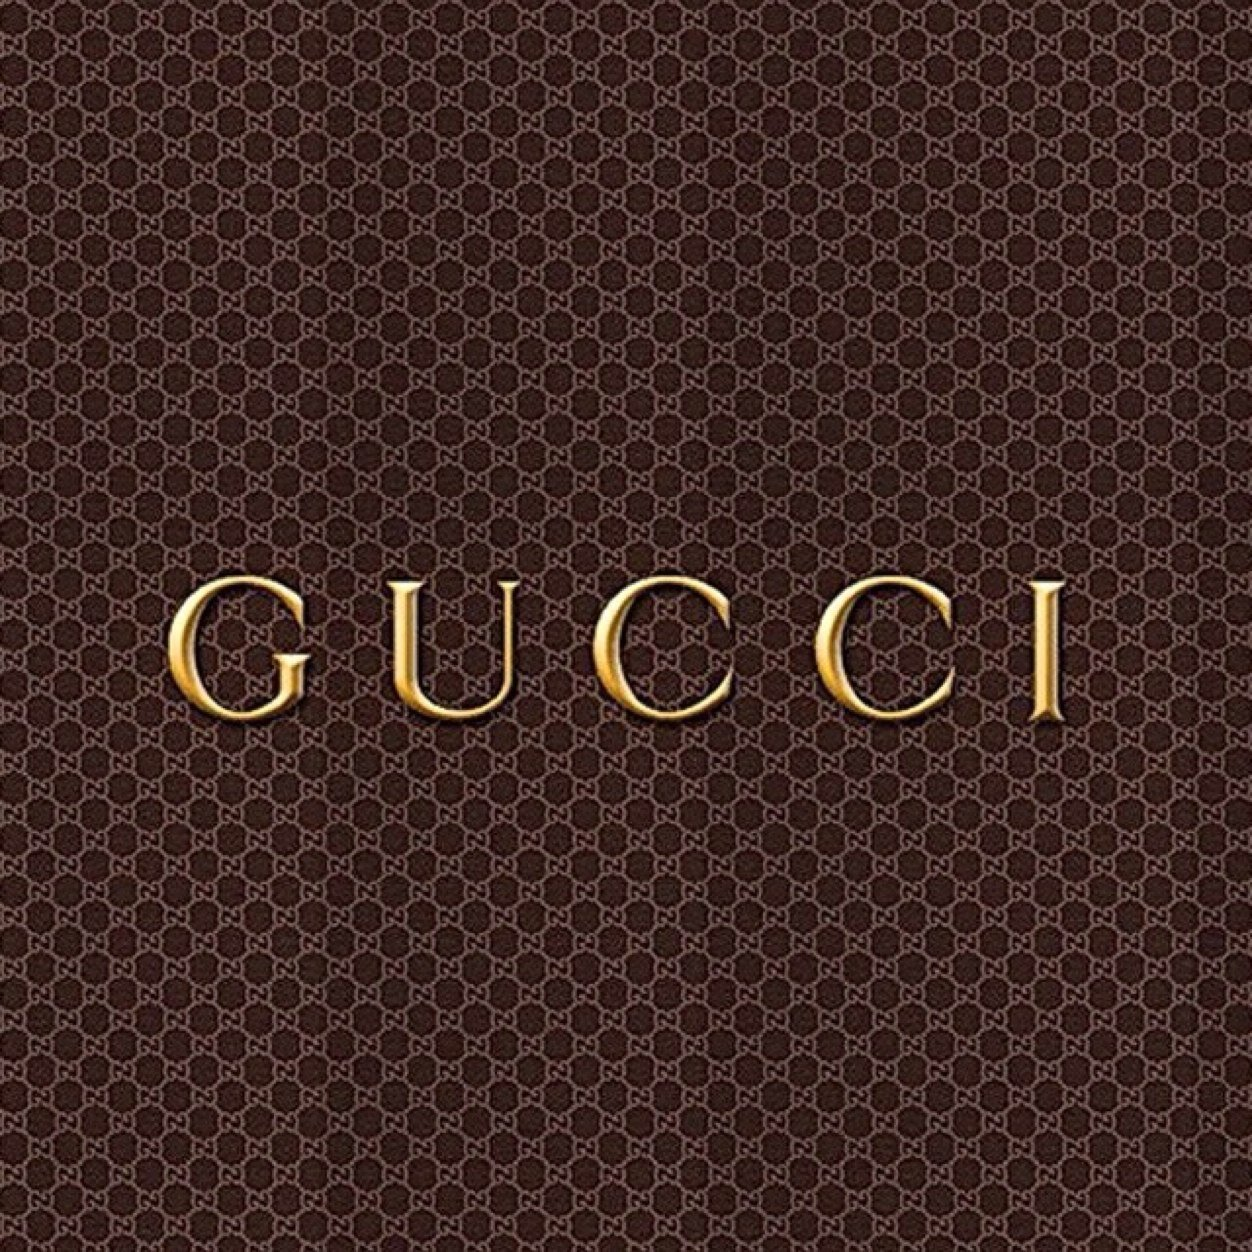 gucci wallpaper hd